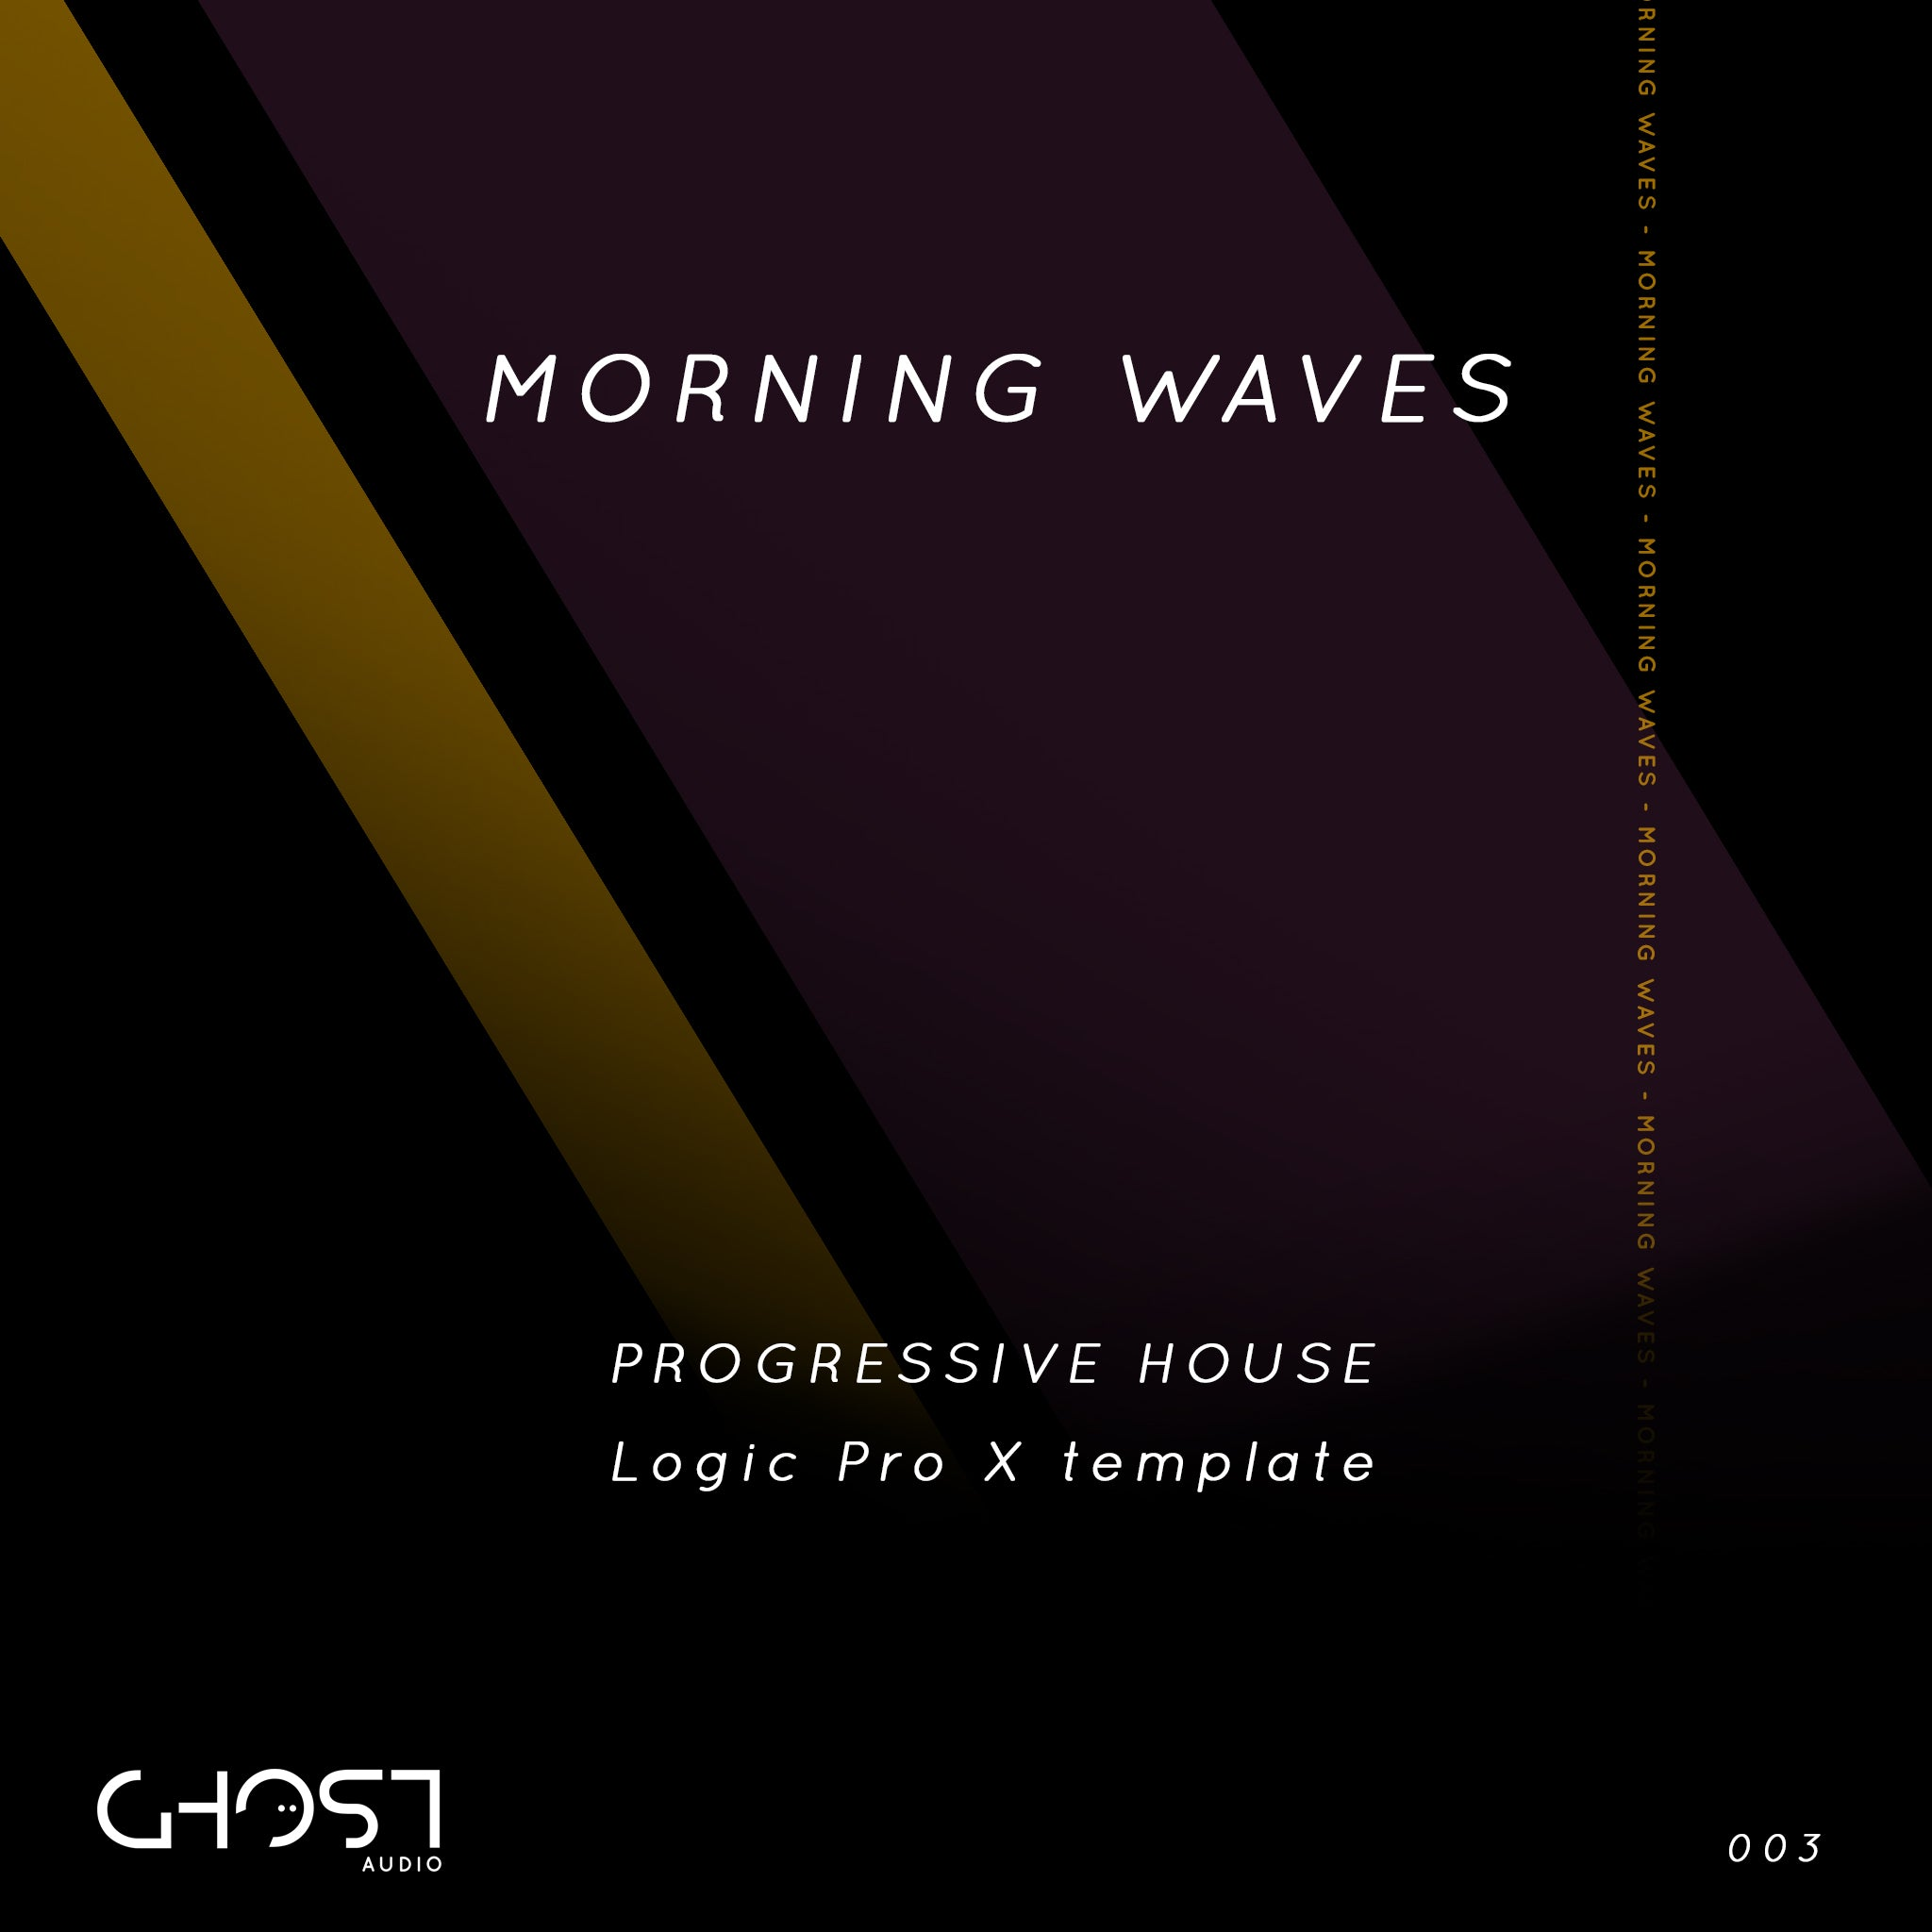 MORNING WAVES - PROGRESSIVE HOUSE ( LOGIC PRO X TEMPLATE )